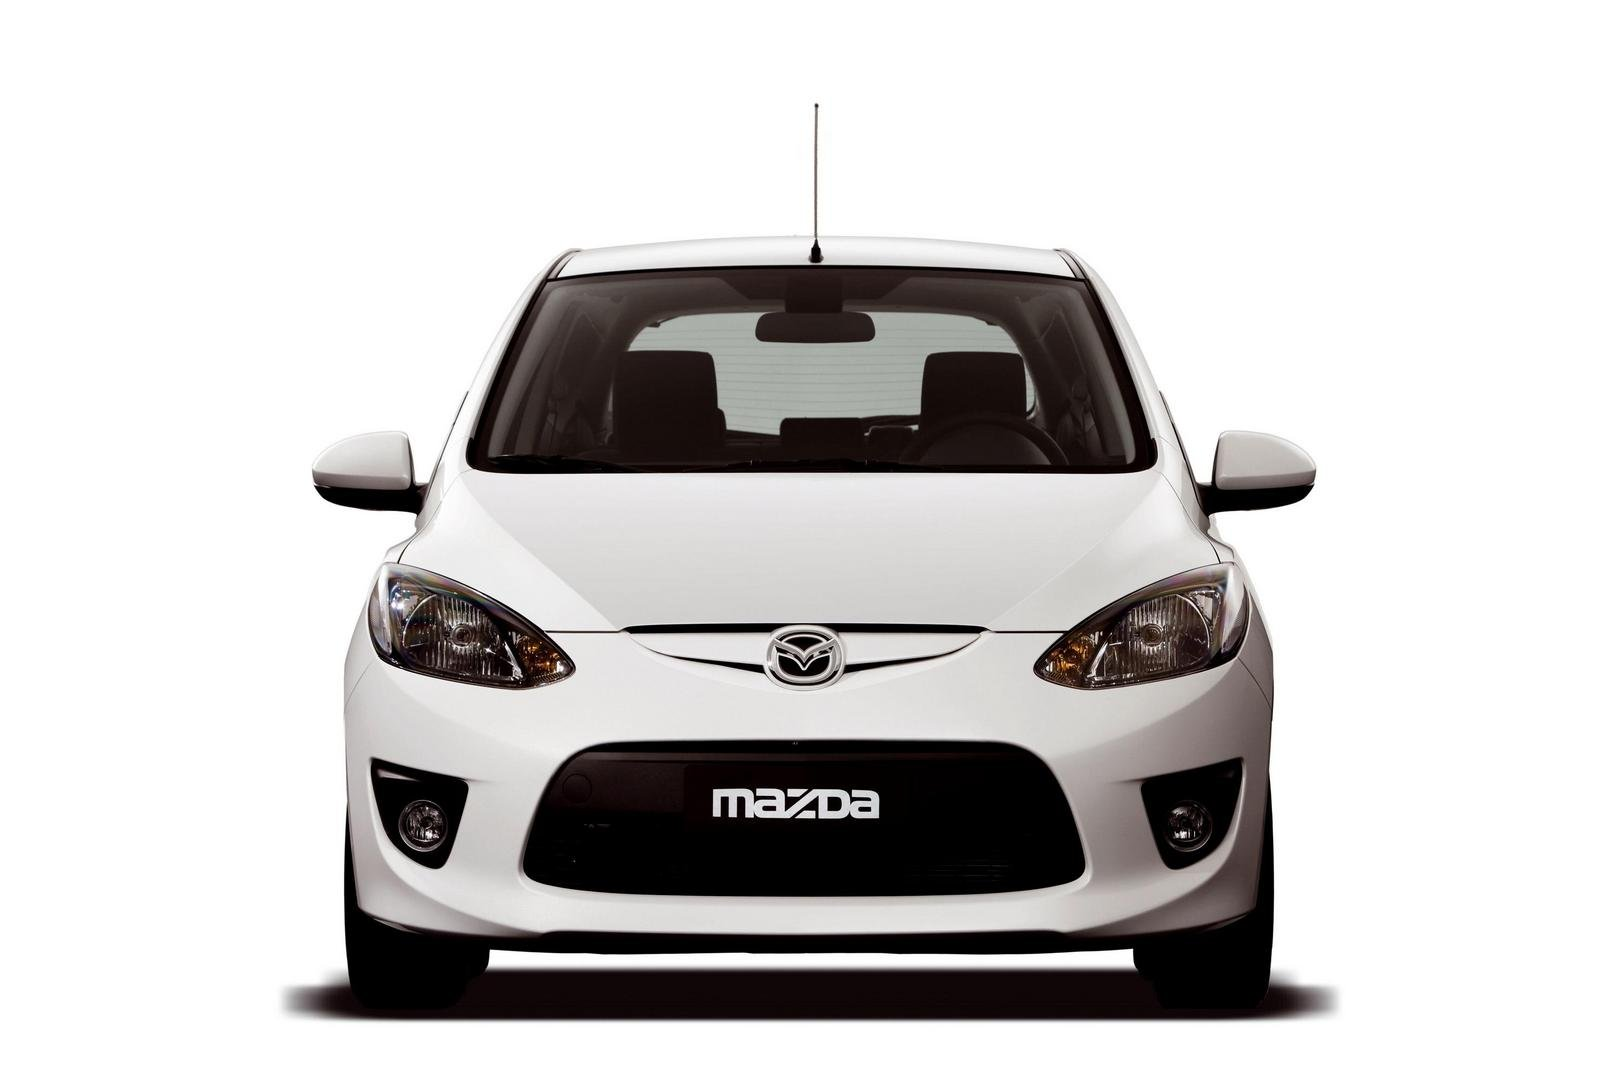 2008 mazda2 three door picture 235522 car review top. Black Bedroom Furniture Sets. Home Design Ideas